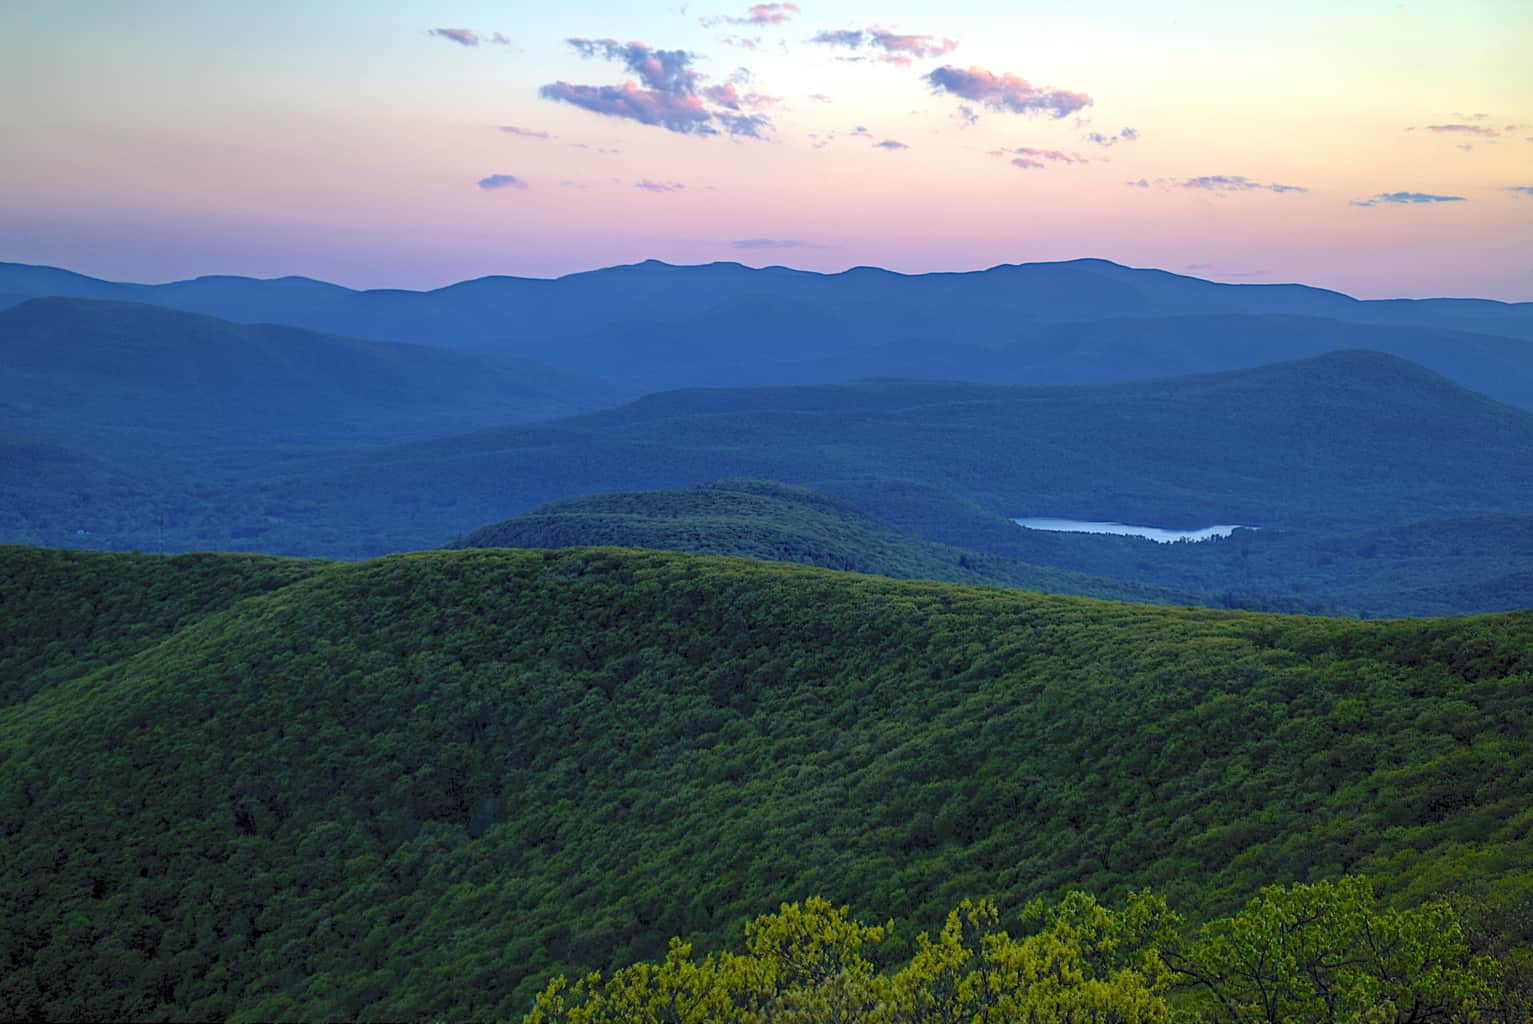 The view from Overlook Mountain in the Catskills.